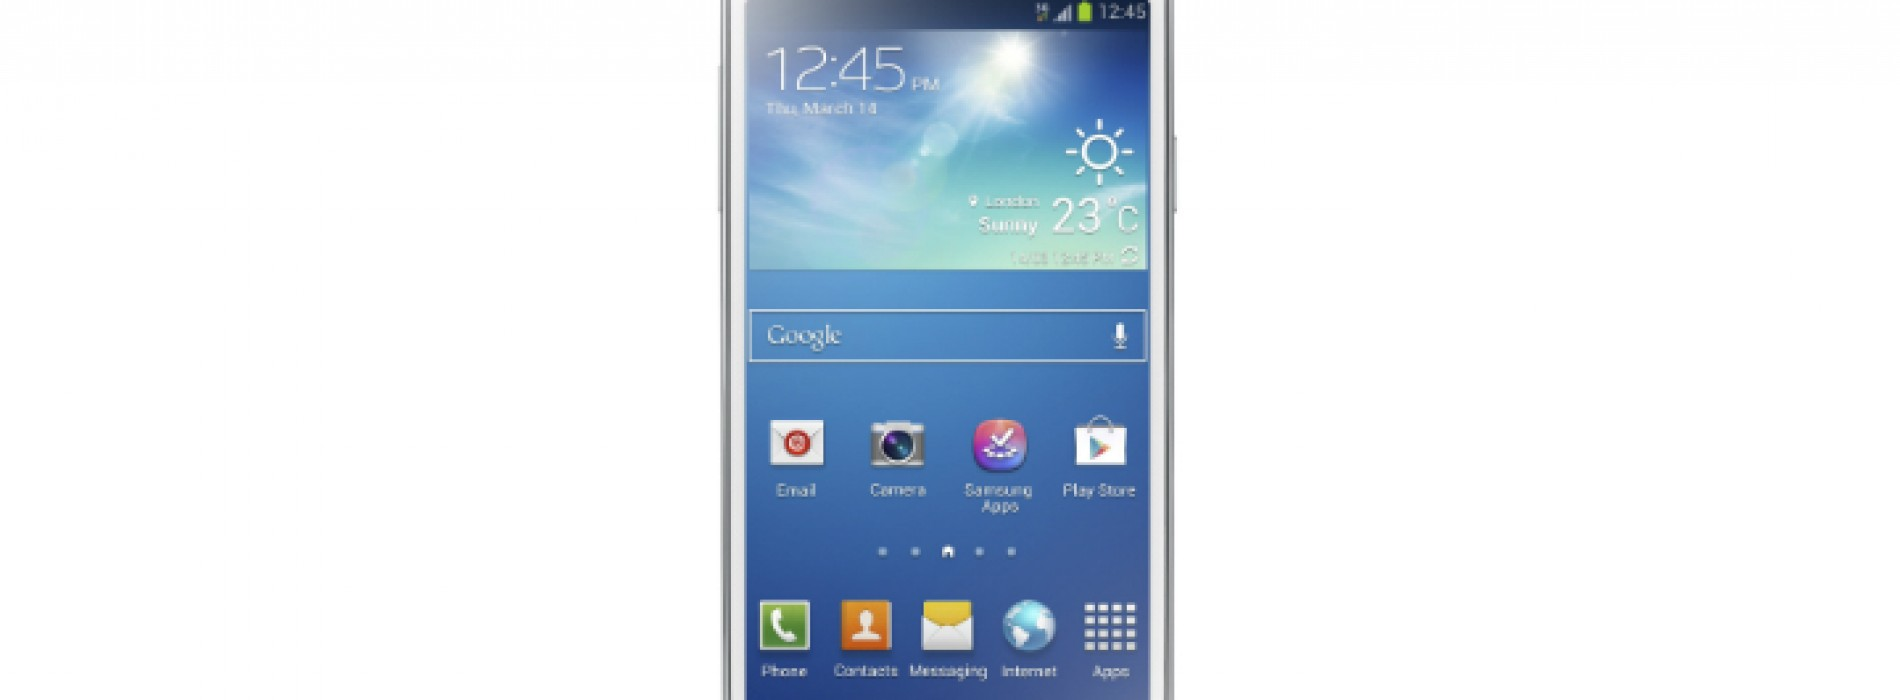 Samsung Galaxy S4 Mini makes its formal debut